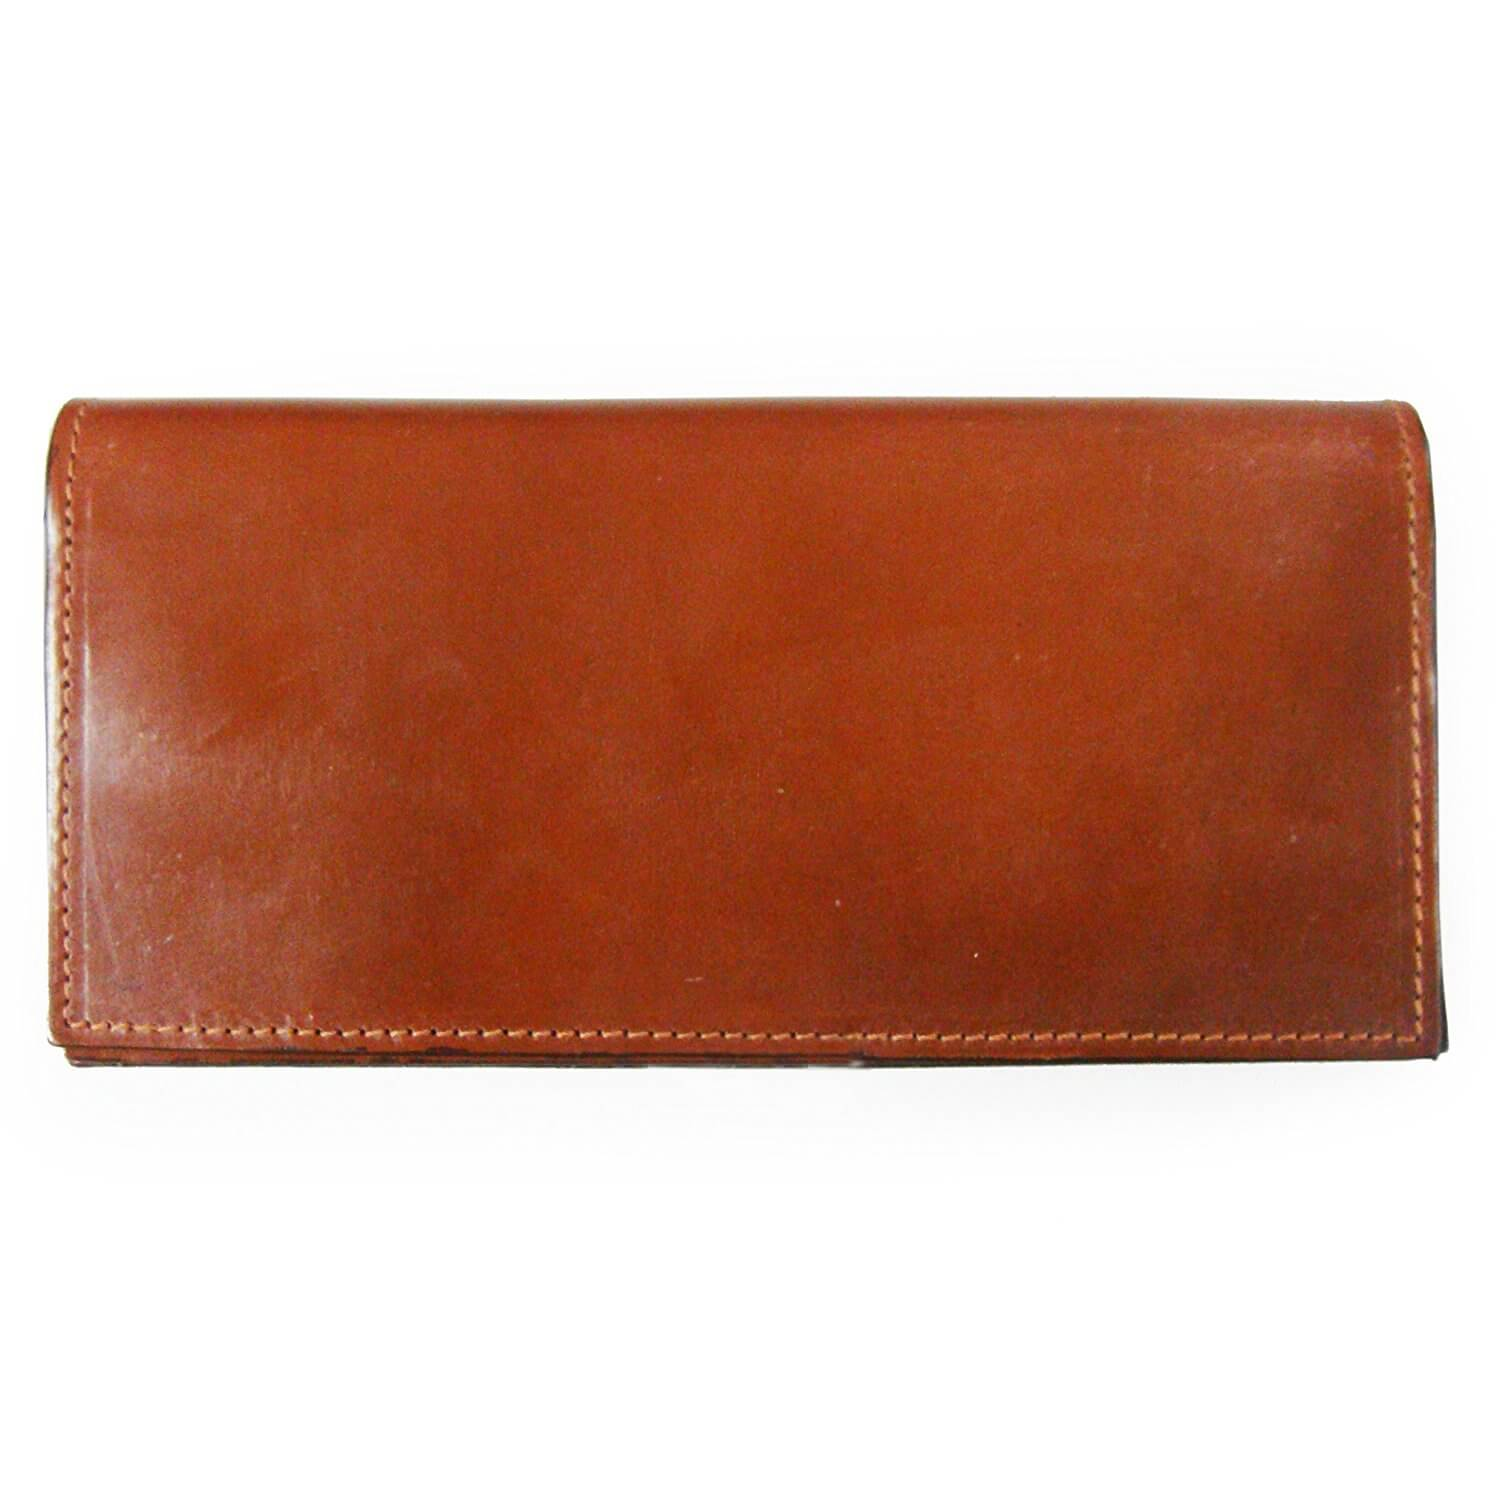 長財布:「LONG WALLET WITH CURVED ZIP(コードバン)」